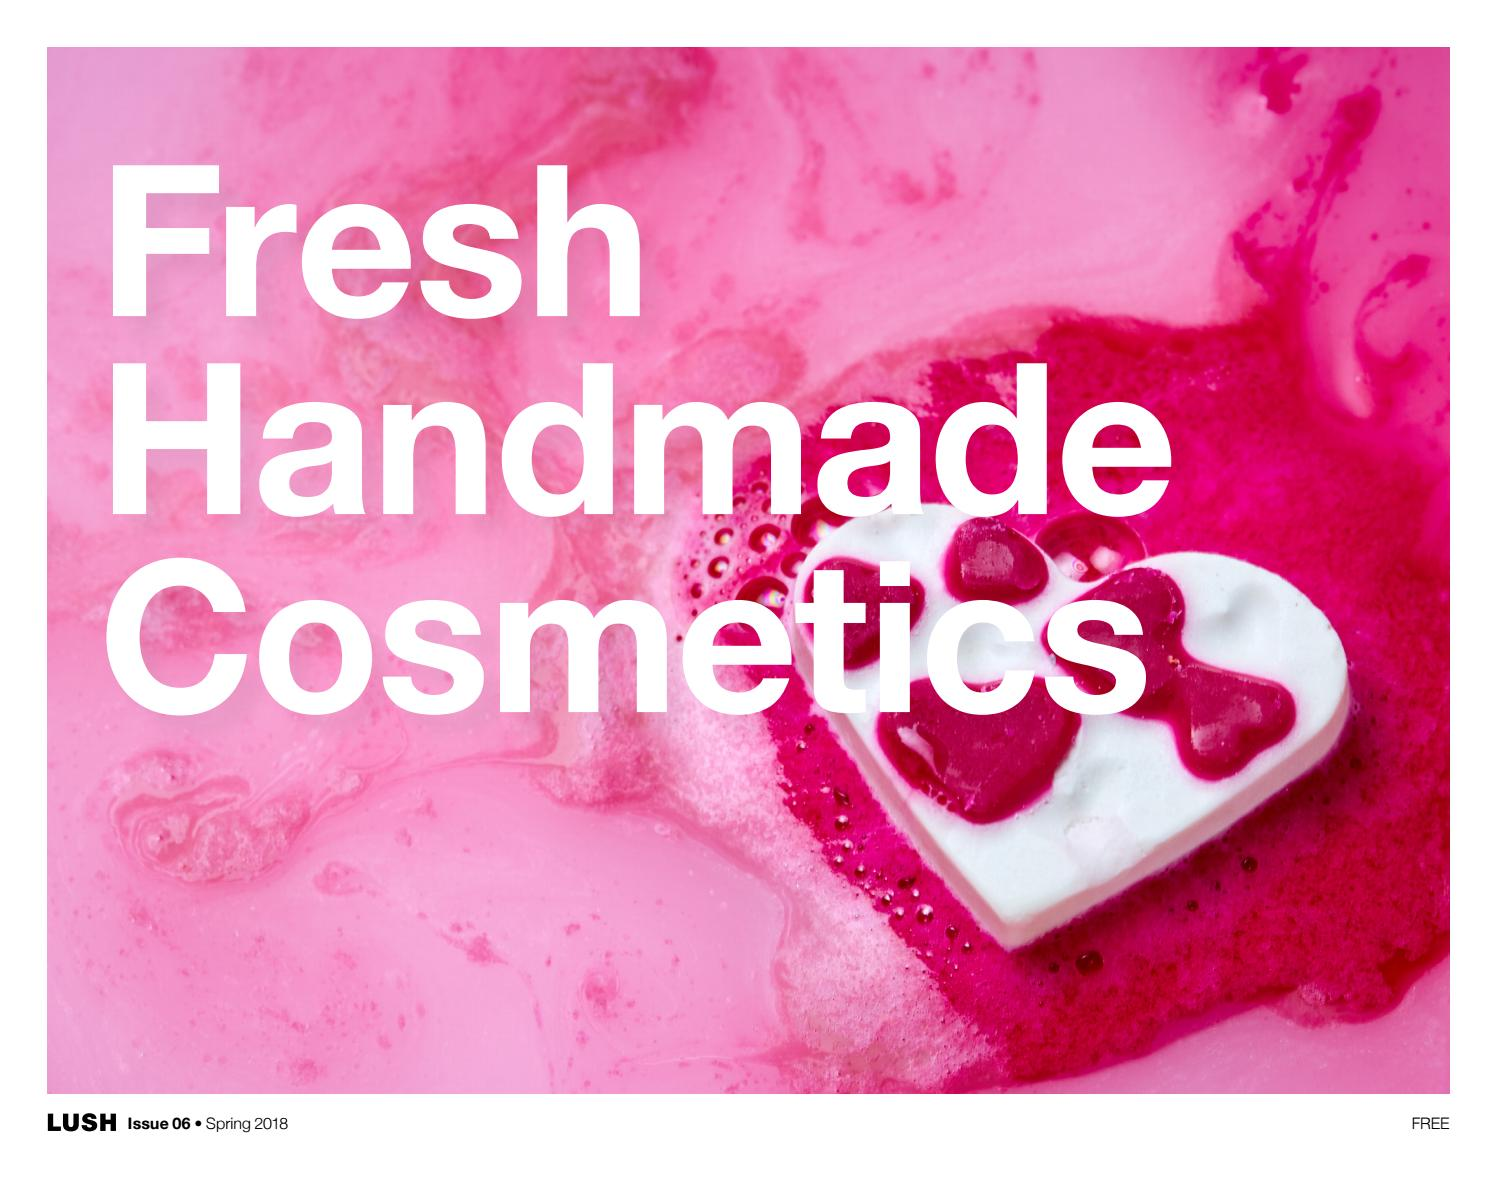 Fresh Handmade Cosmetics Issue 06 Spring 2018 Usa By Lush Bubble Bath Foam Aromatherapy Pure Peppermint Essential Oil Pink Lotus Issuu